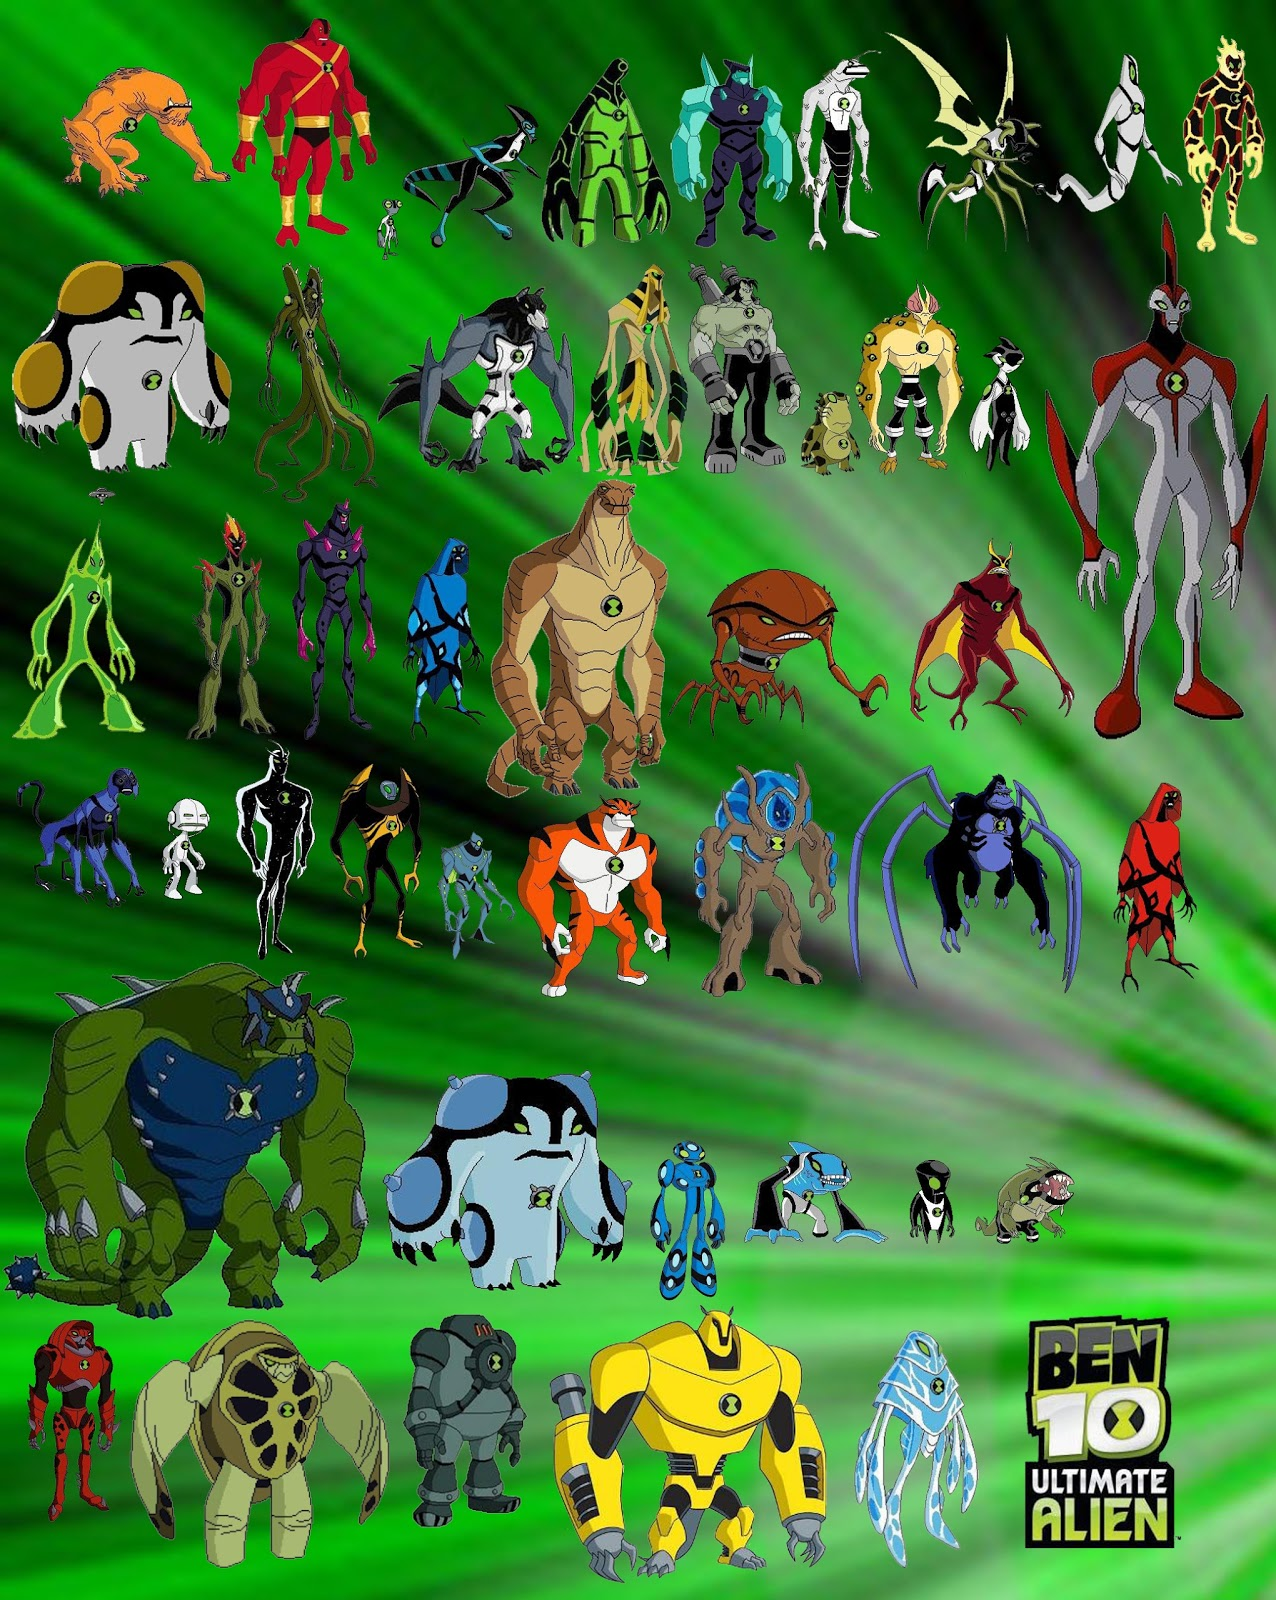 10 Ultimate Aliens List Ben 10 All Dna Scans Transformations